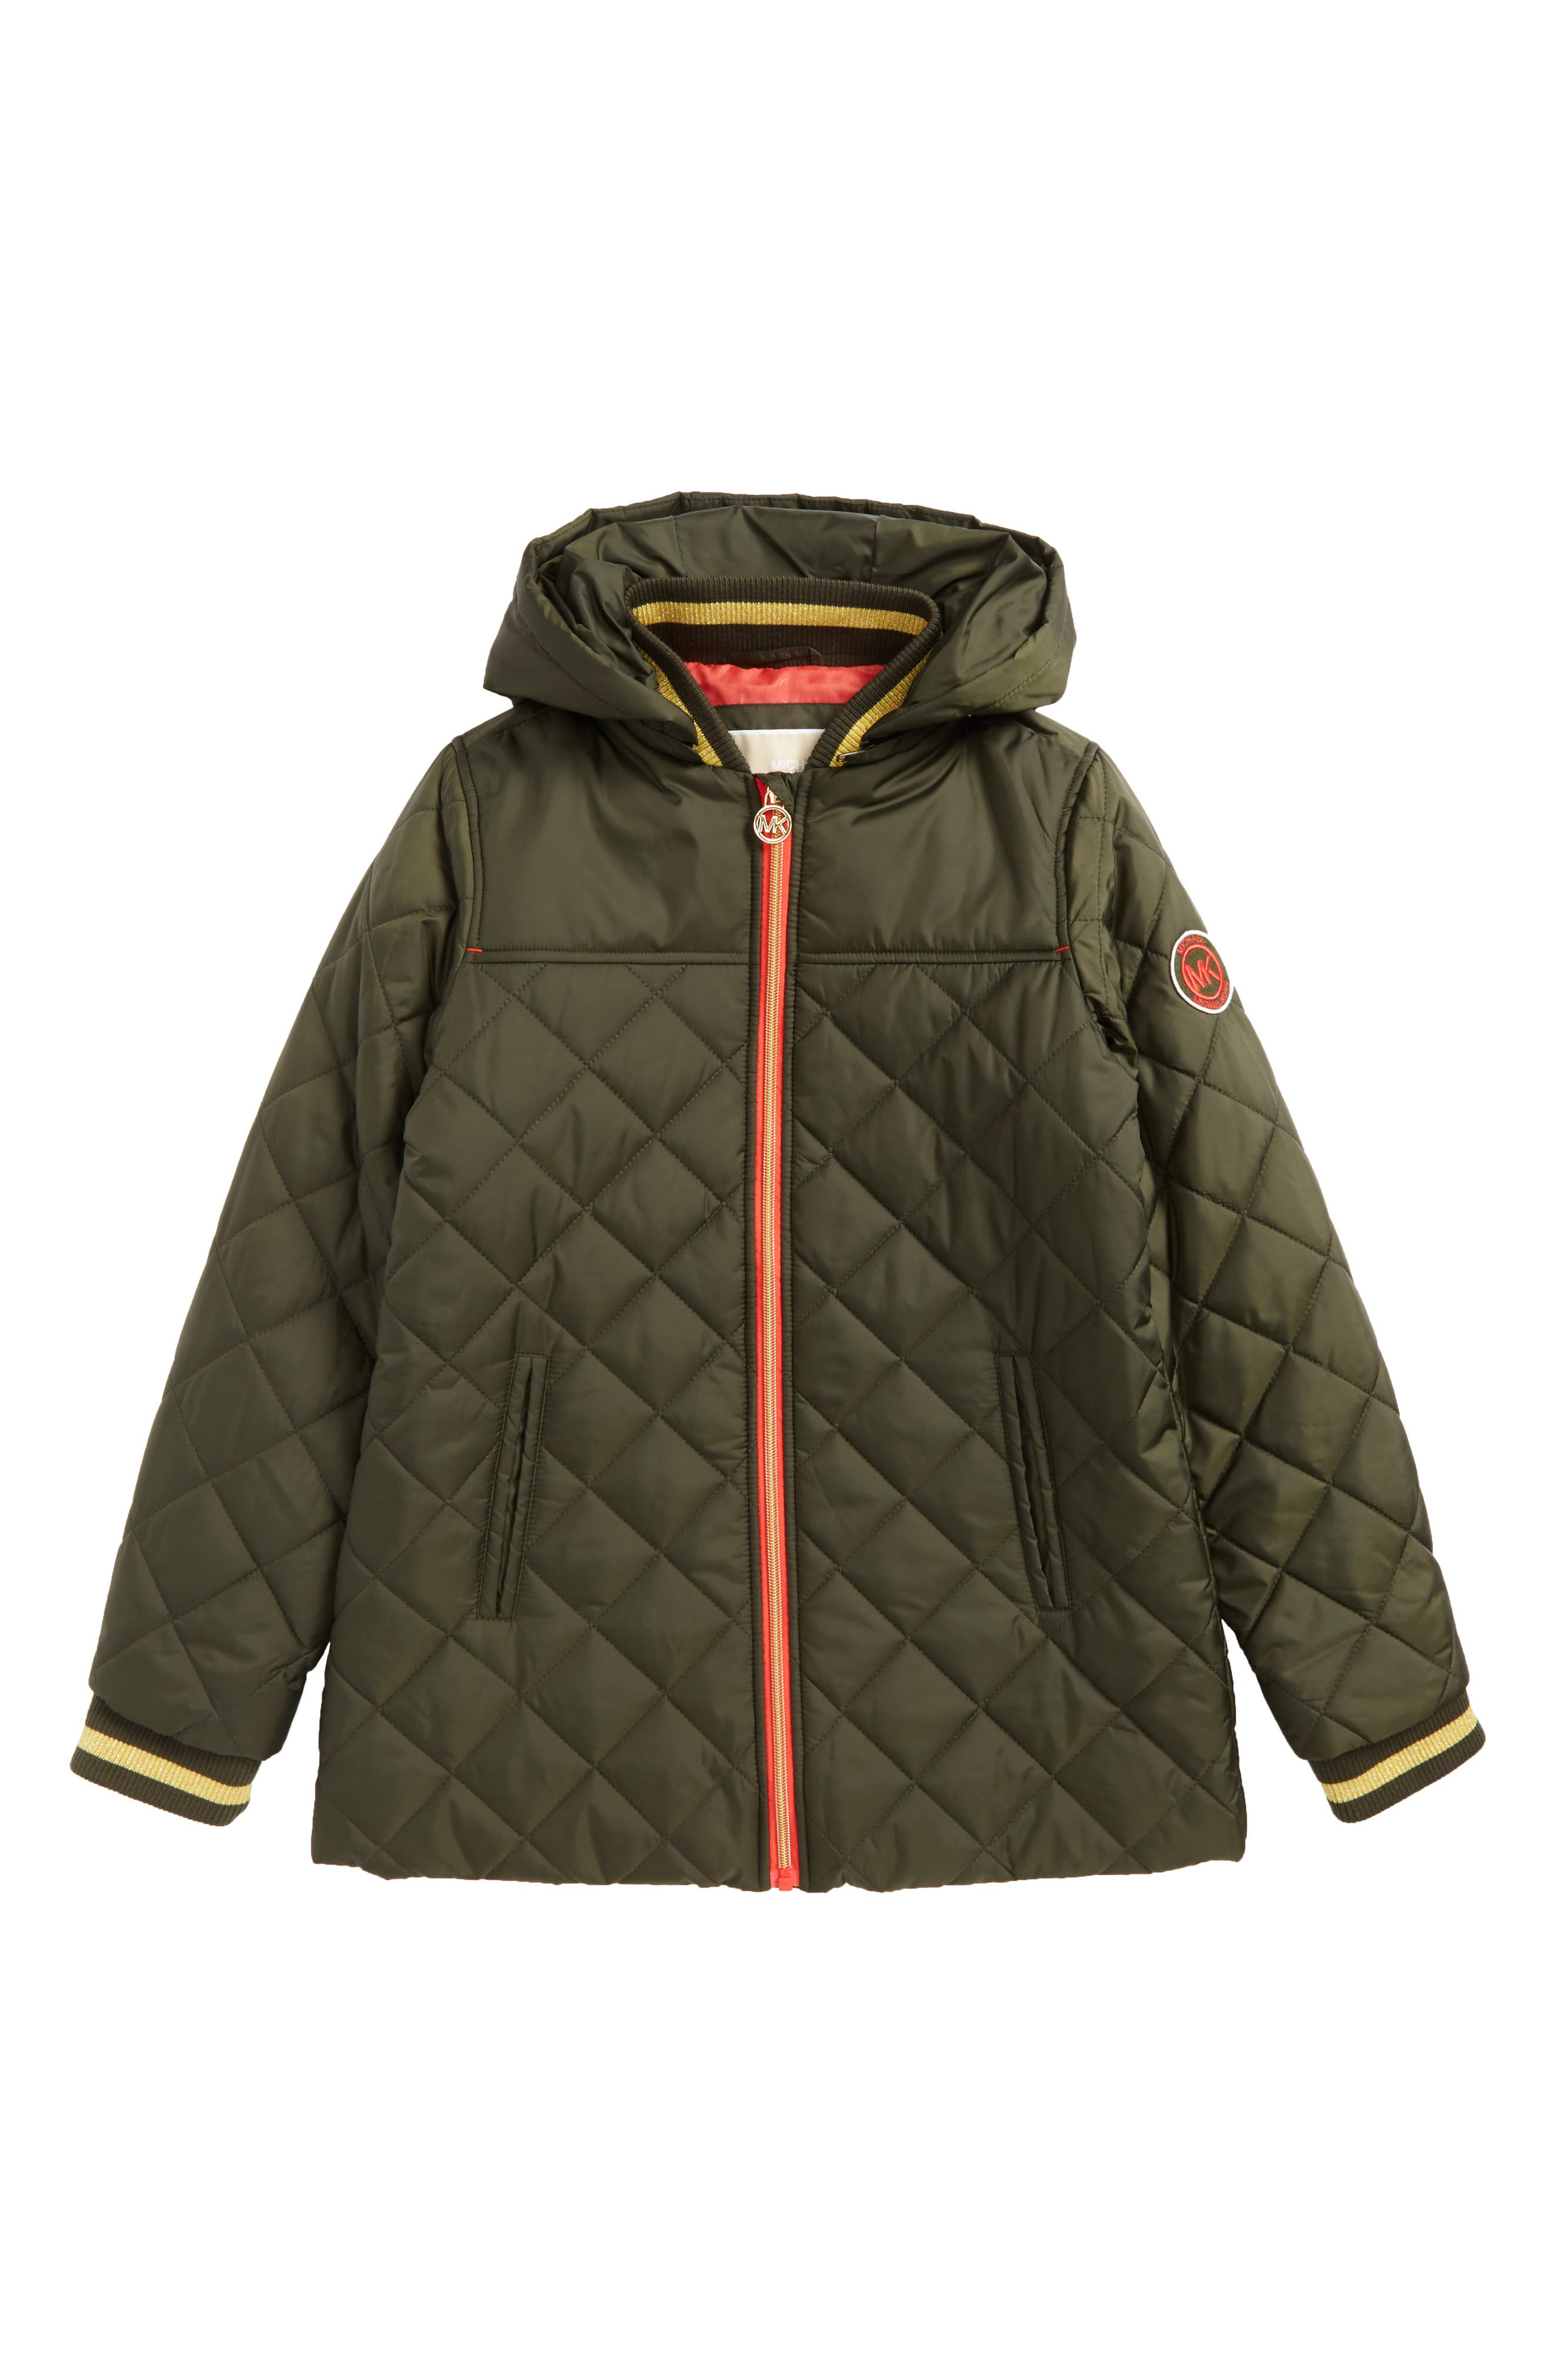 Main Image - Michael Kors Quilted Hooded Jacket (Big Girls)